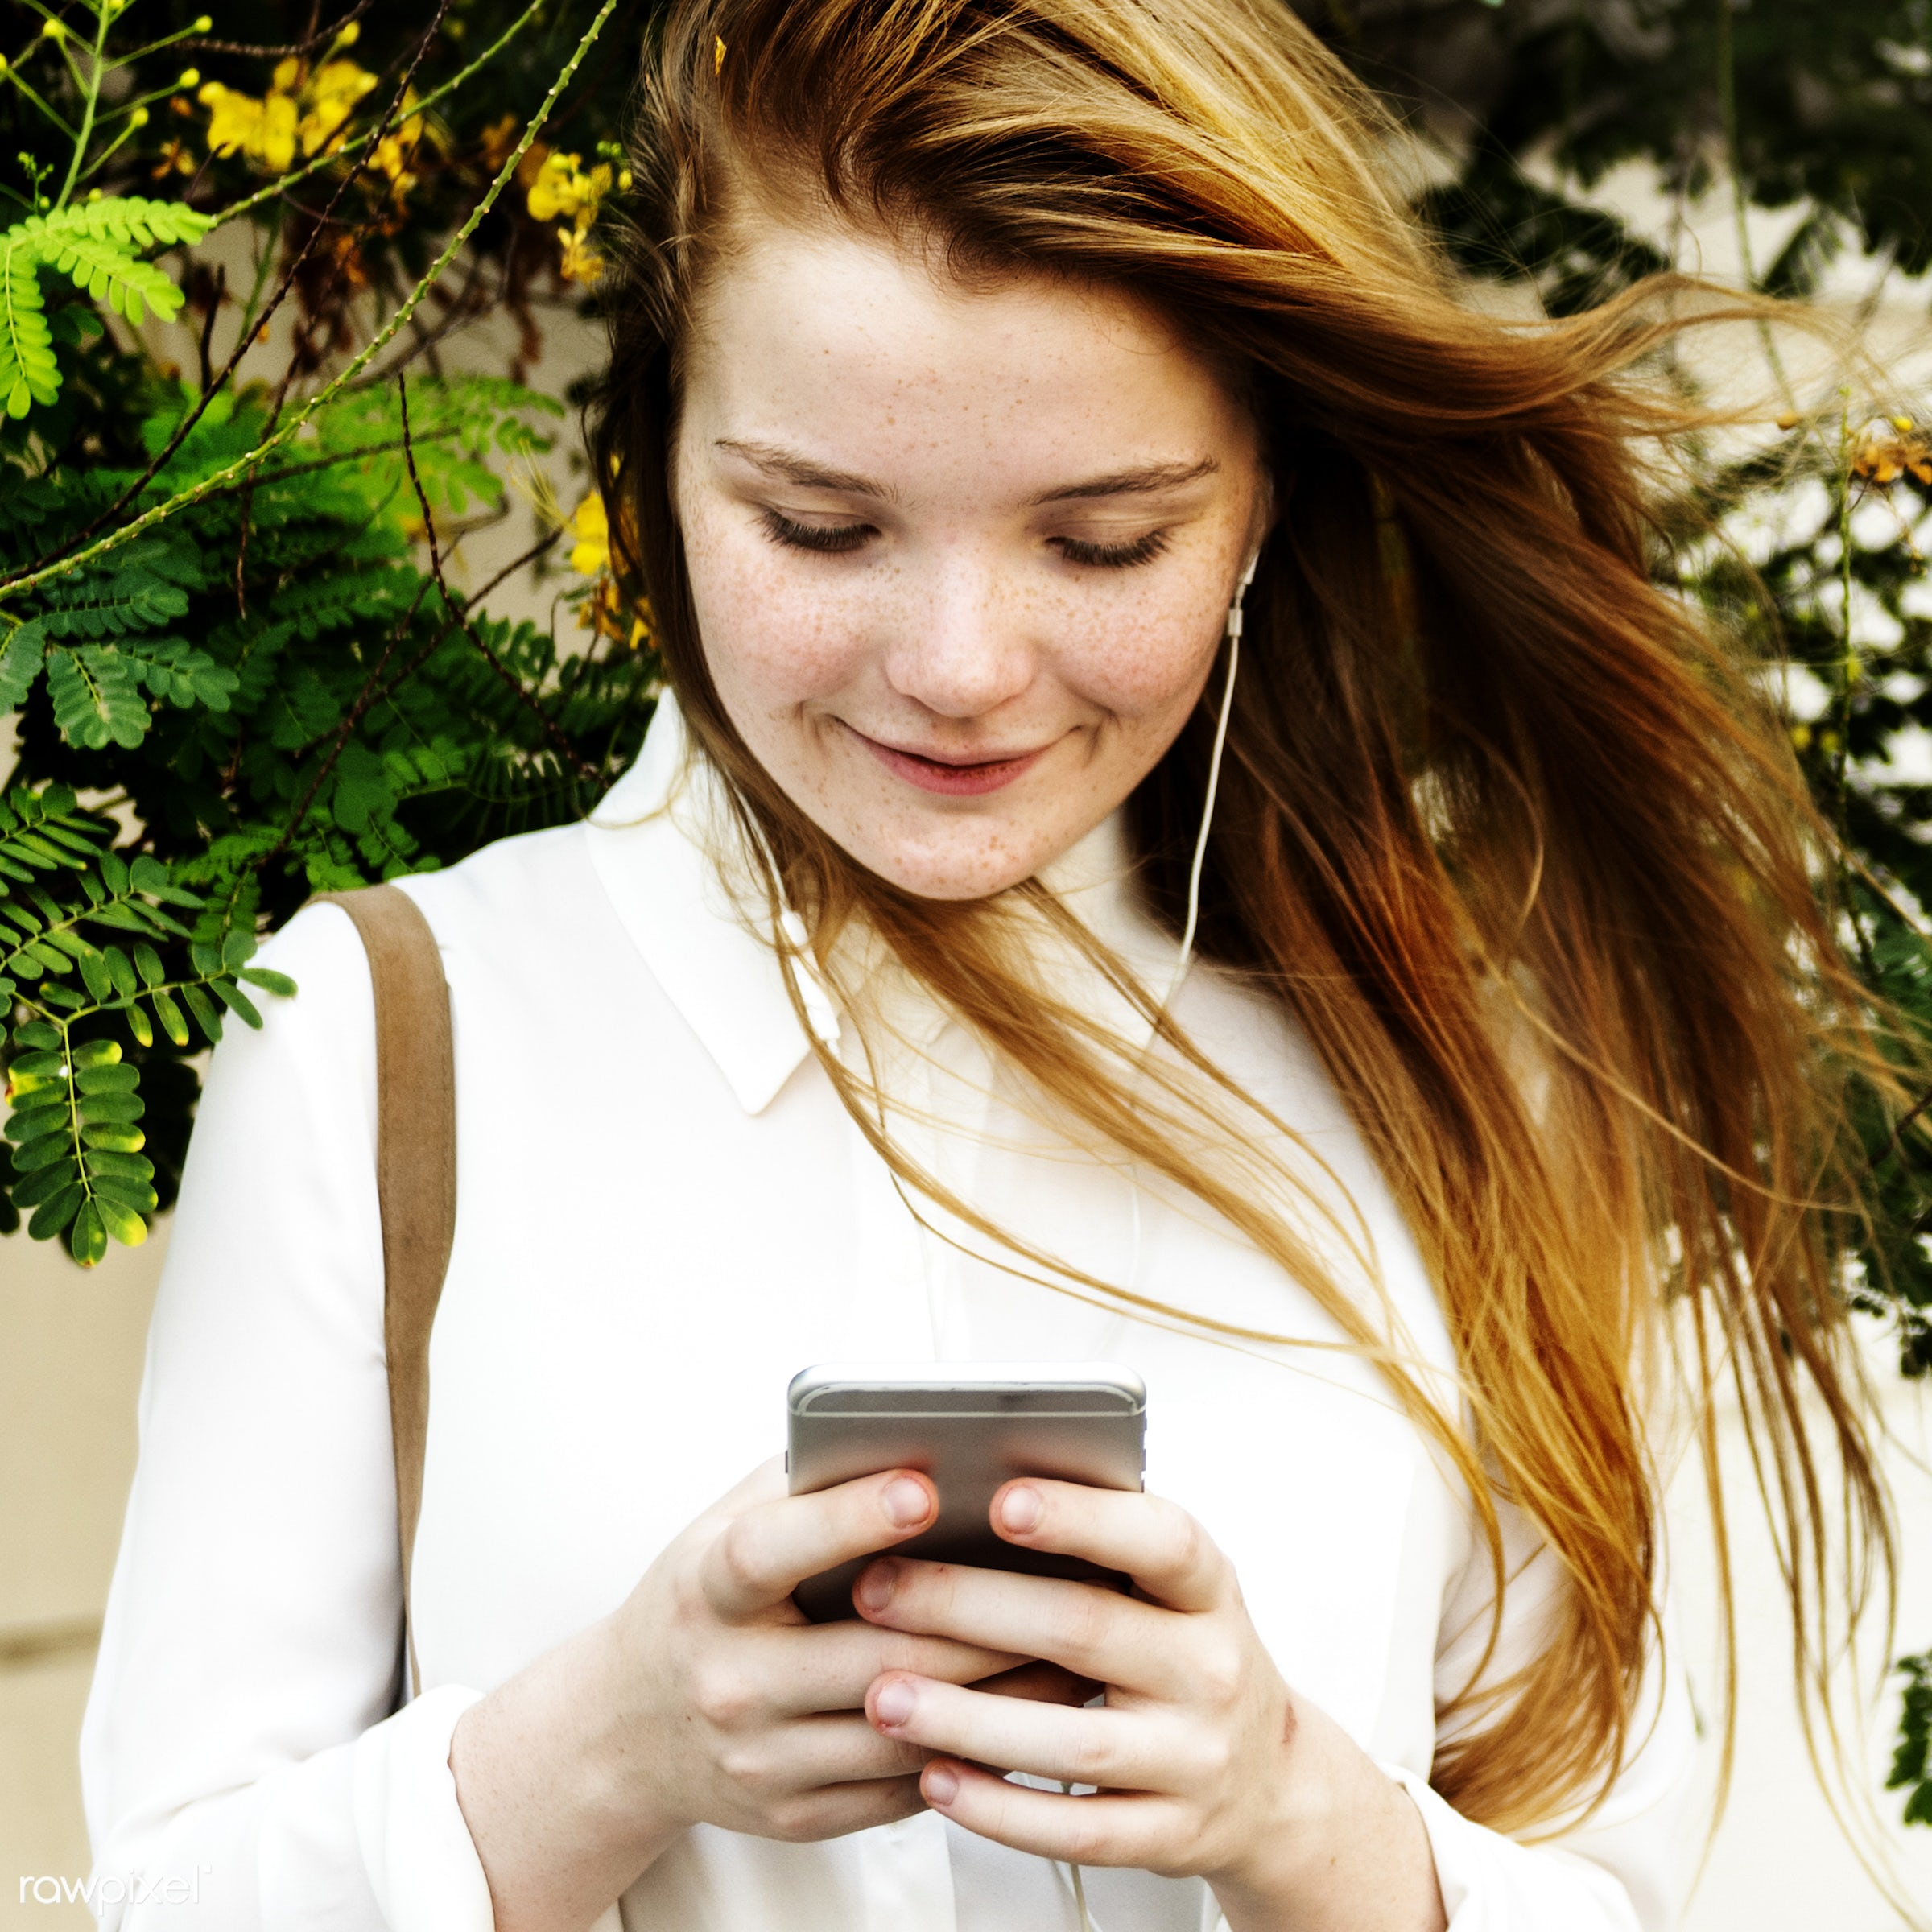 alone, attractive, casual, cheerful, connecting, day, device, digital, enjoyment, experience, fashion, female, freedom, fun...